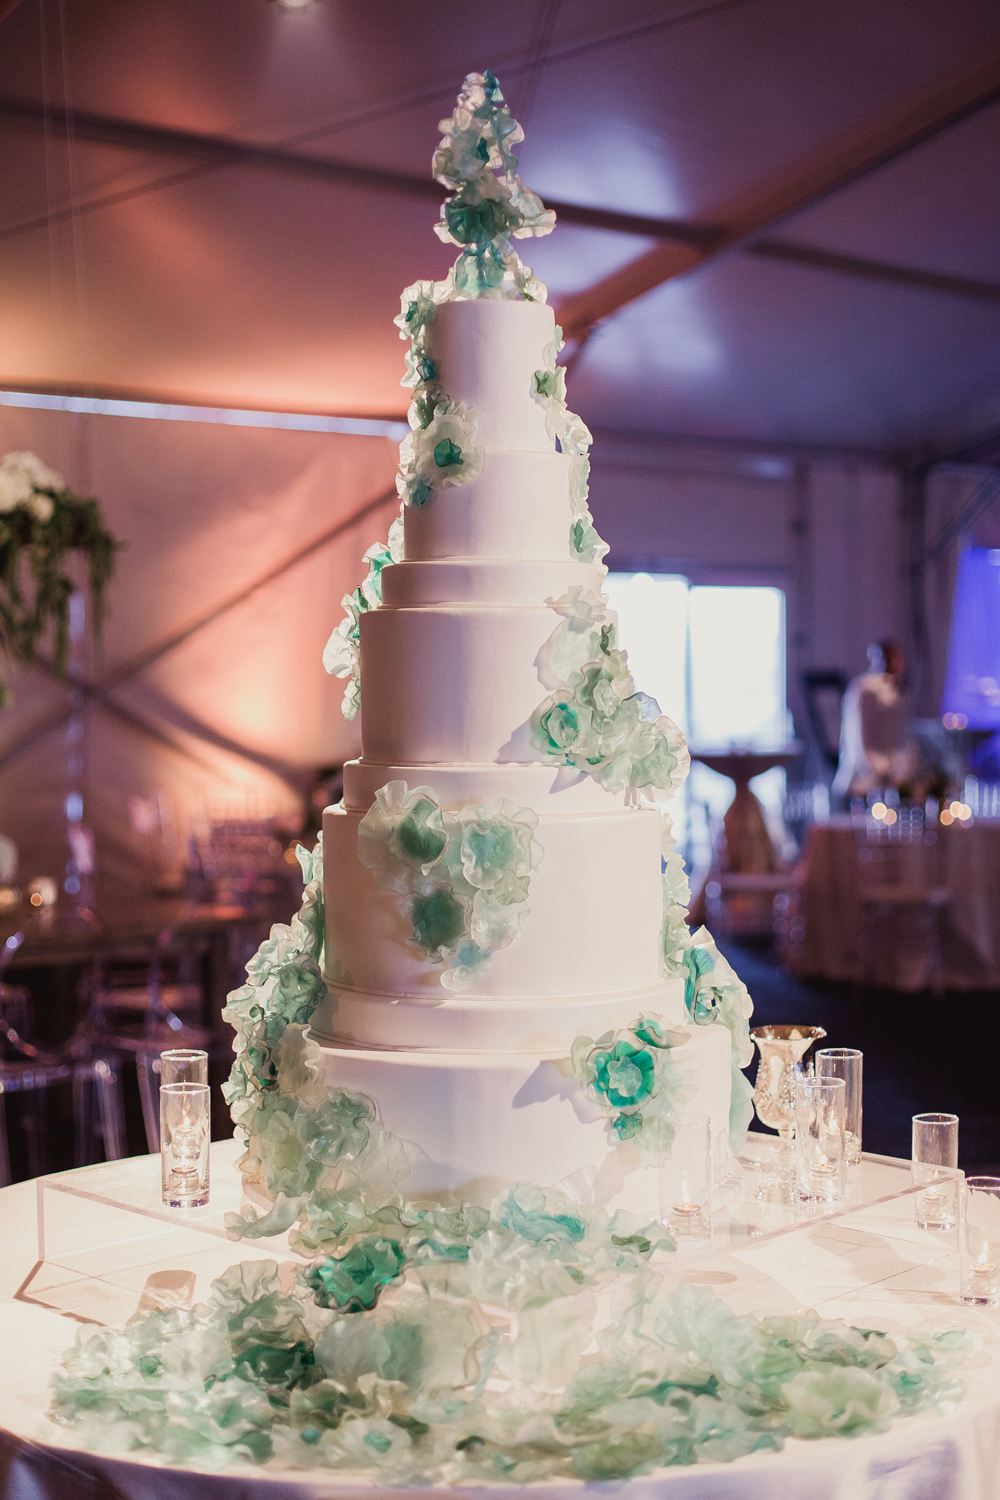 Wedding cake ideas nontraditional wedding cake decorations and white tall wedding cake with blue and green clear flower designs art inspired izmirmasajfo